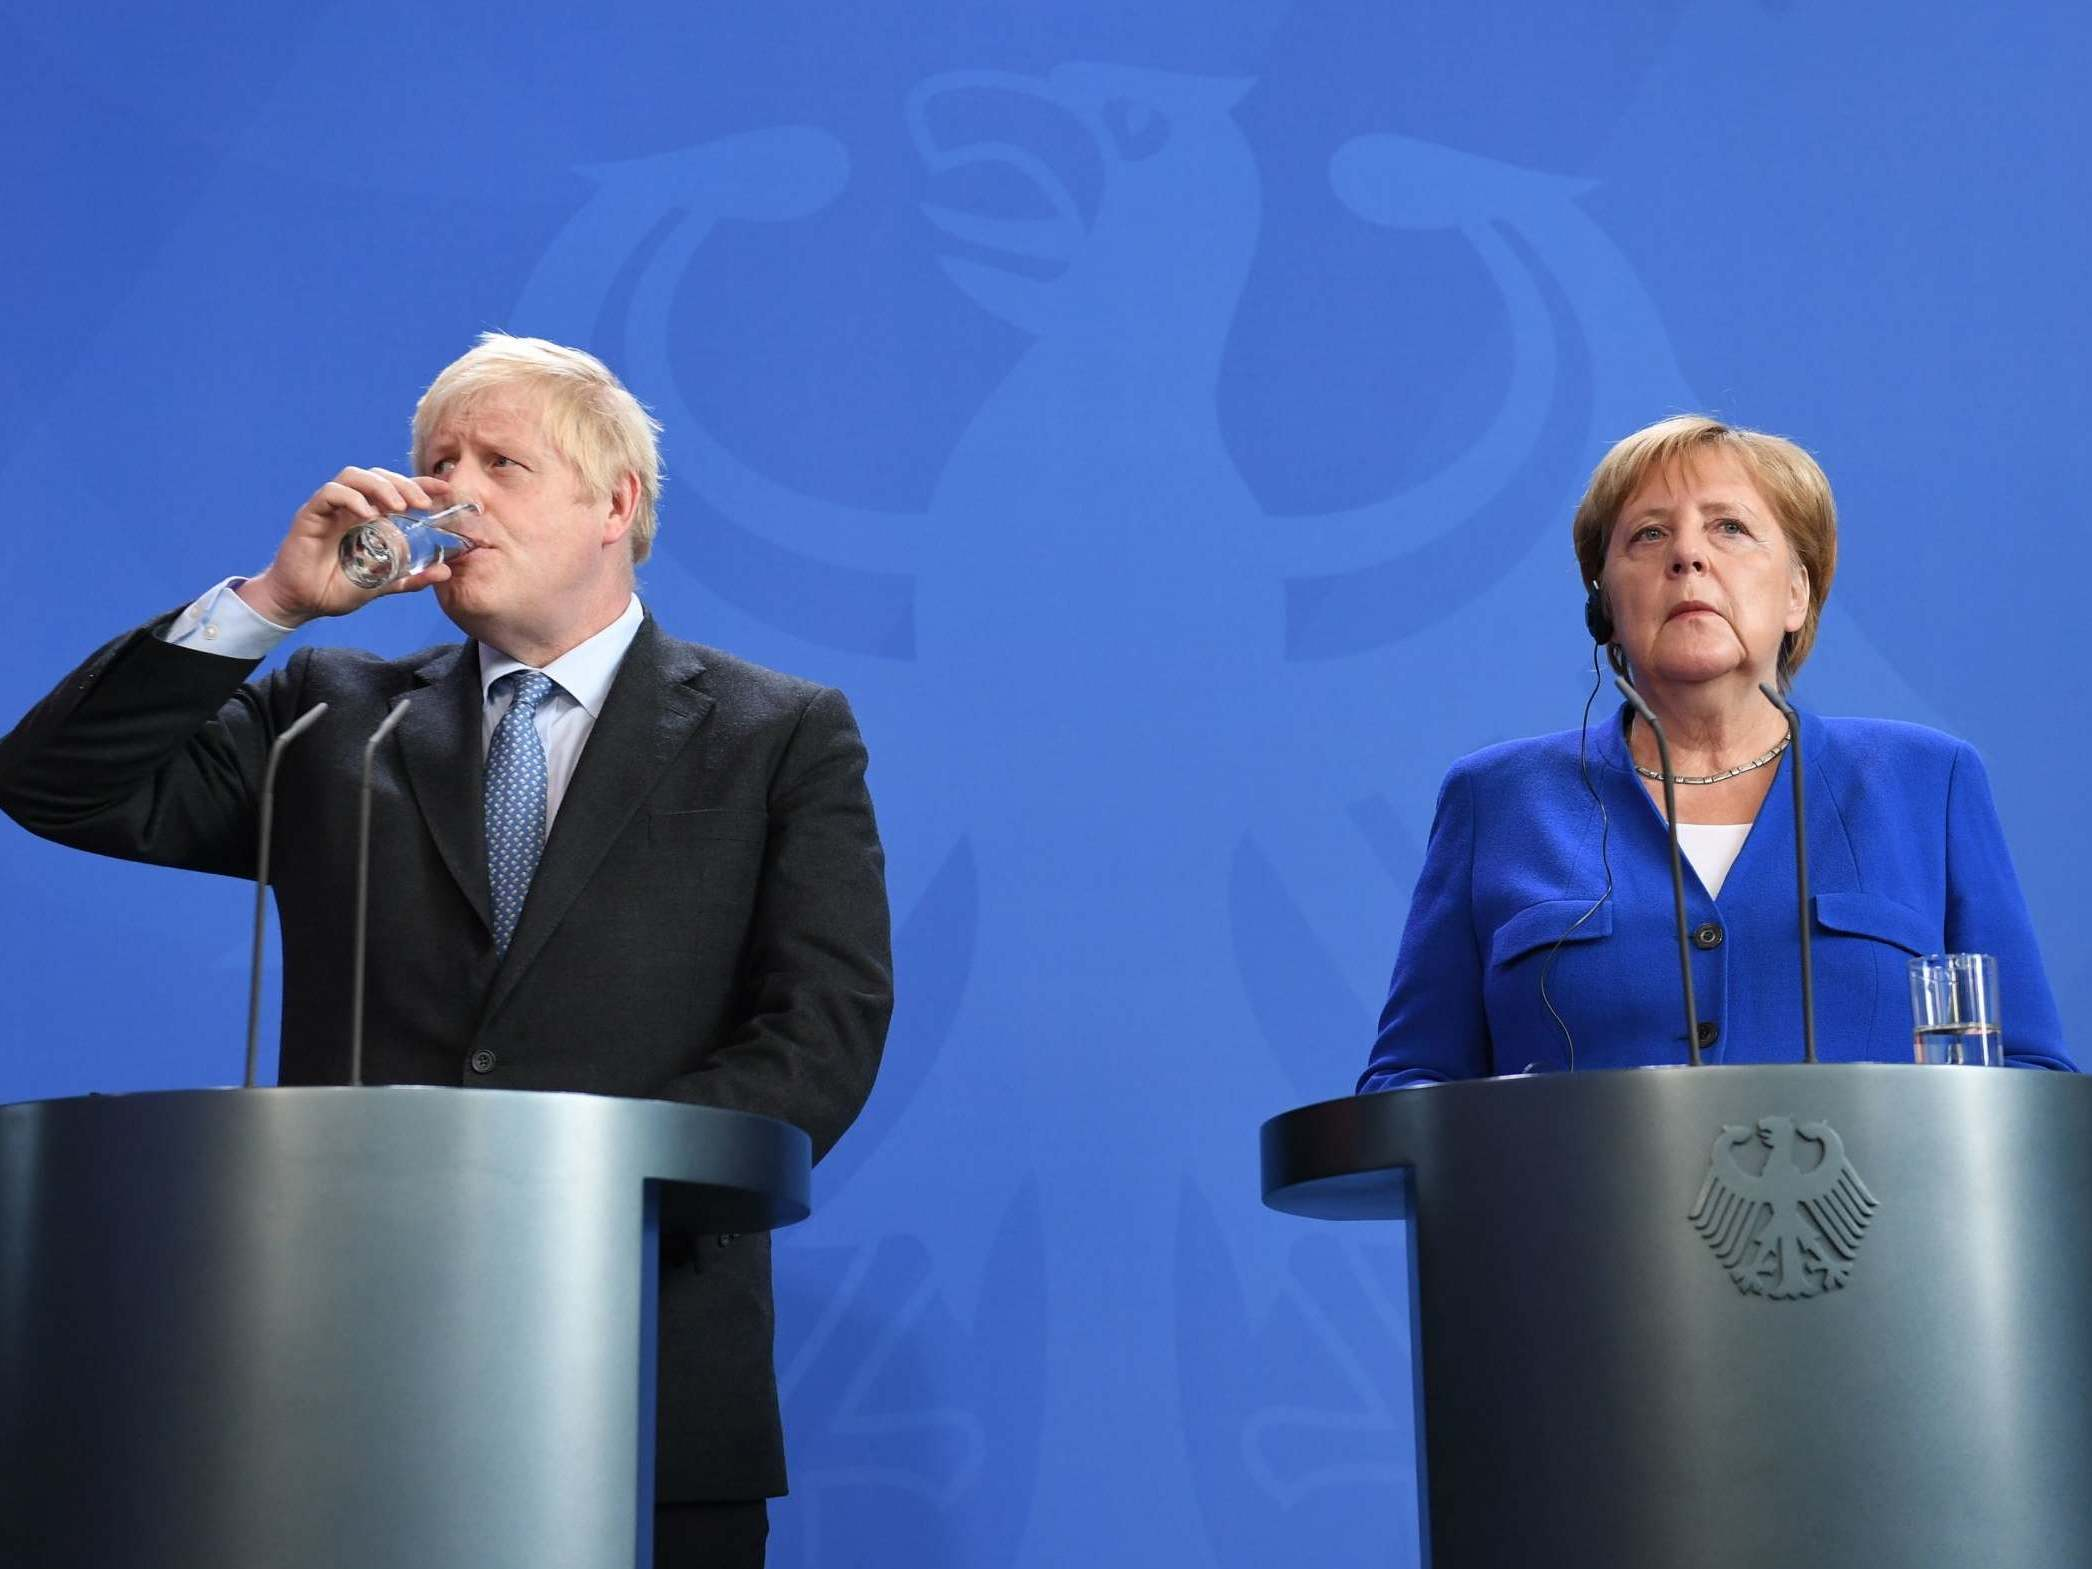 It took Boris Johnson thirty seconds to try to get Angela Merkel to …